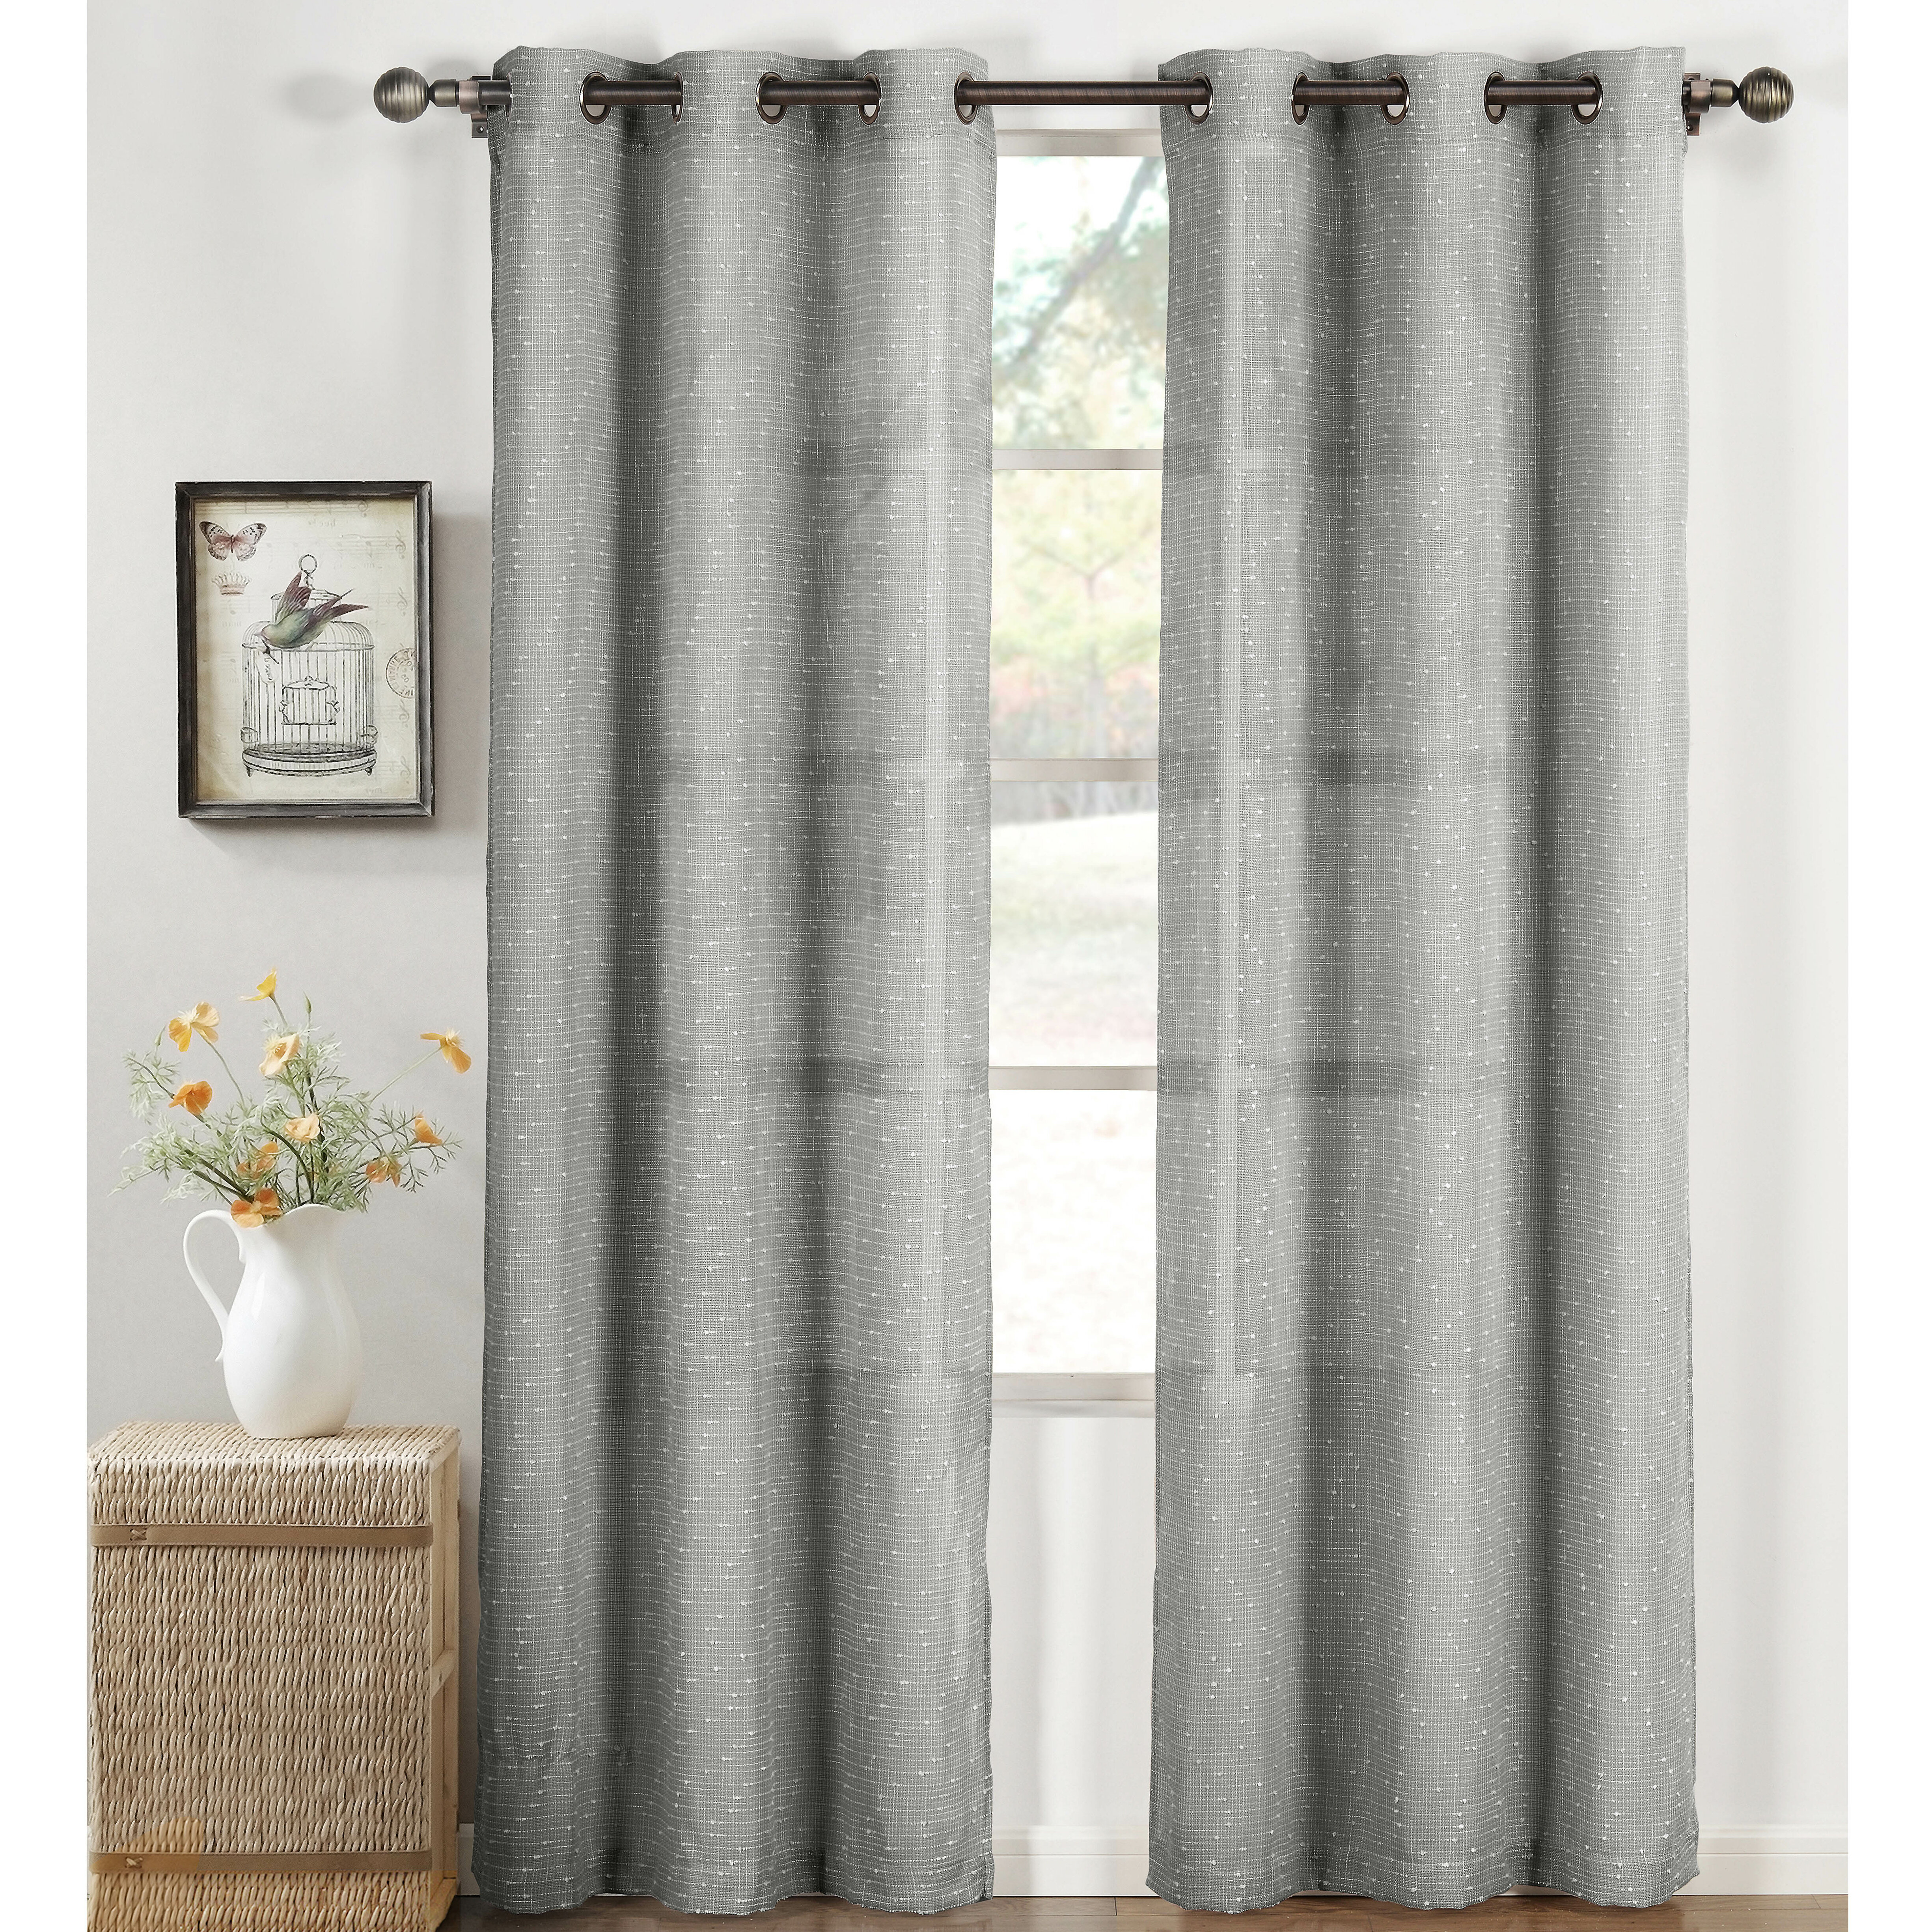 pennys in philipsburg maarten sxm penny on cinnamon st back gray store or martin lanai beautiful linen stores curtains bedroom home coffee accessories street s at